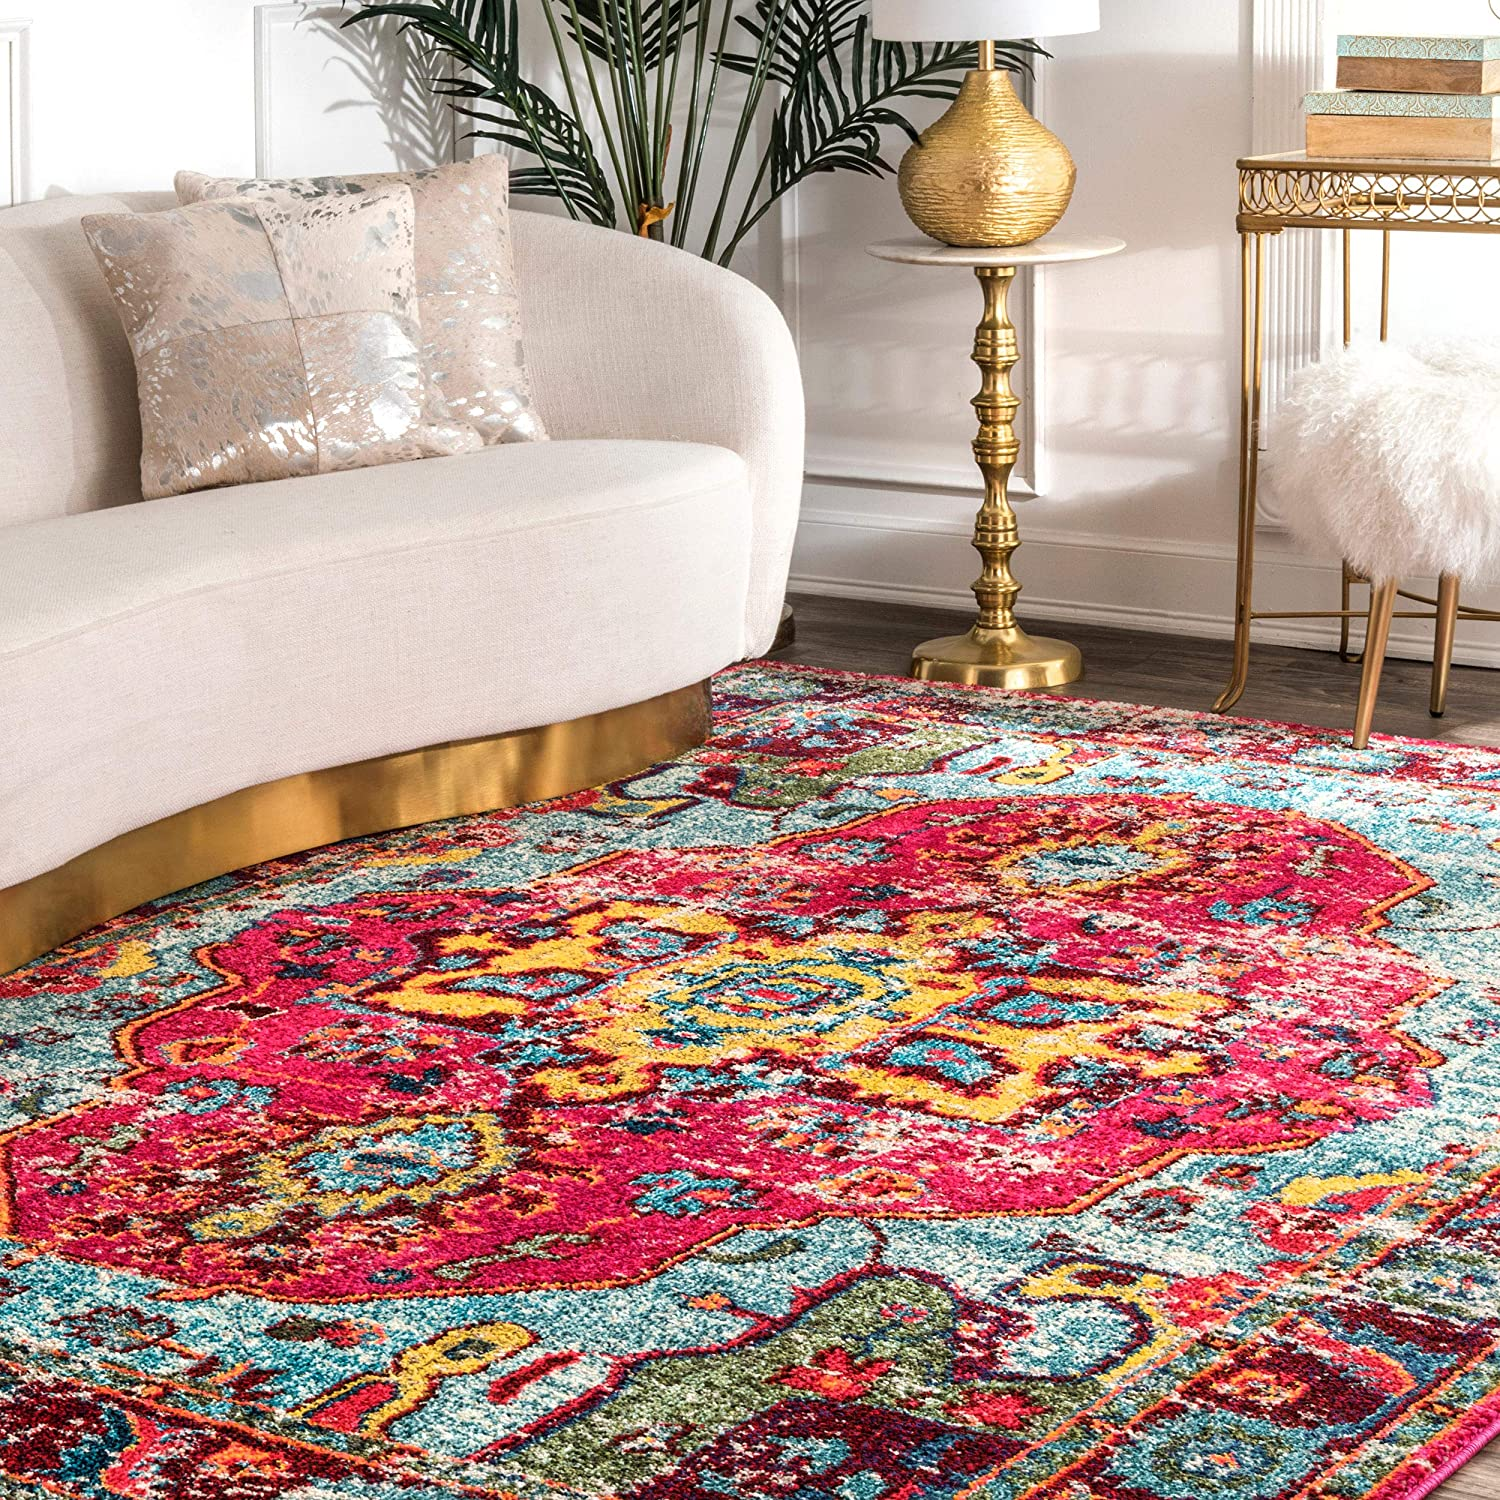 nuLOOM Bohemian Corbett Distressed Accent Rug, 2' x 3', Multi